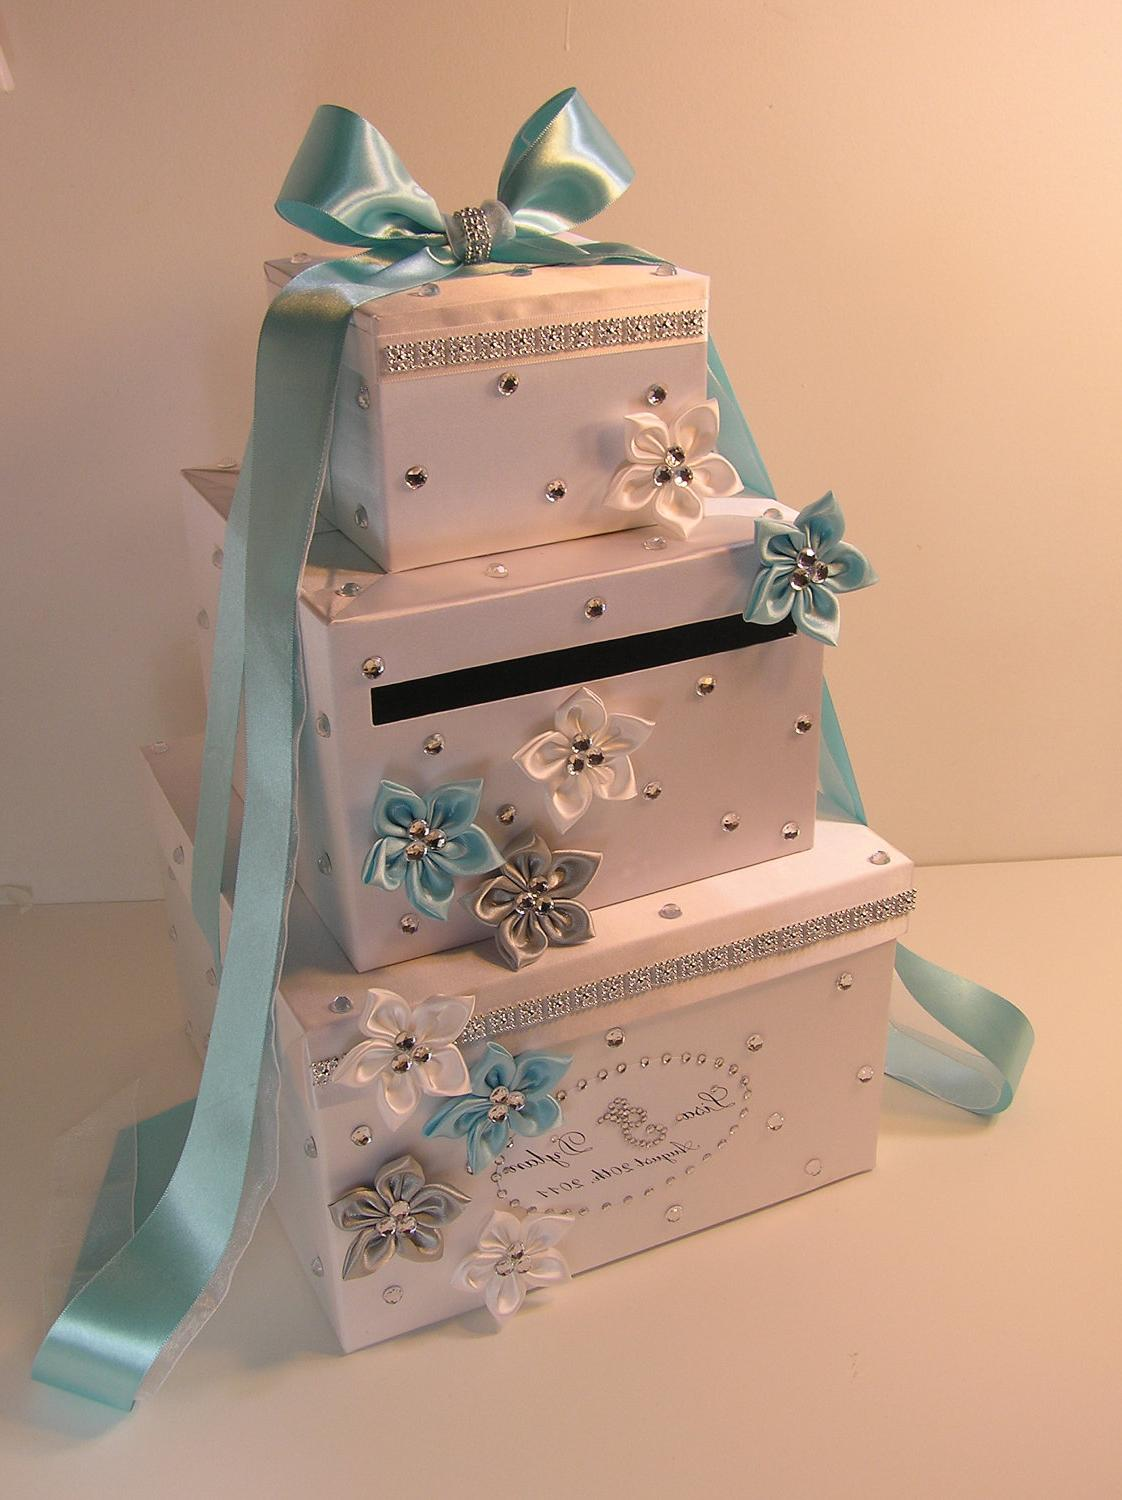 Wedding Gift Box Suggestions : White_Wedding_Card_Box_Gift_Card_Box_Money_Card_Box_HolderCustomize ...